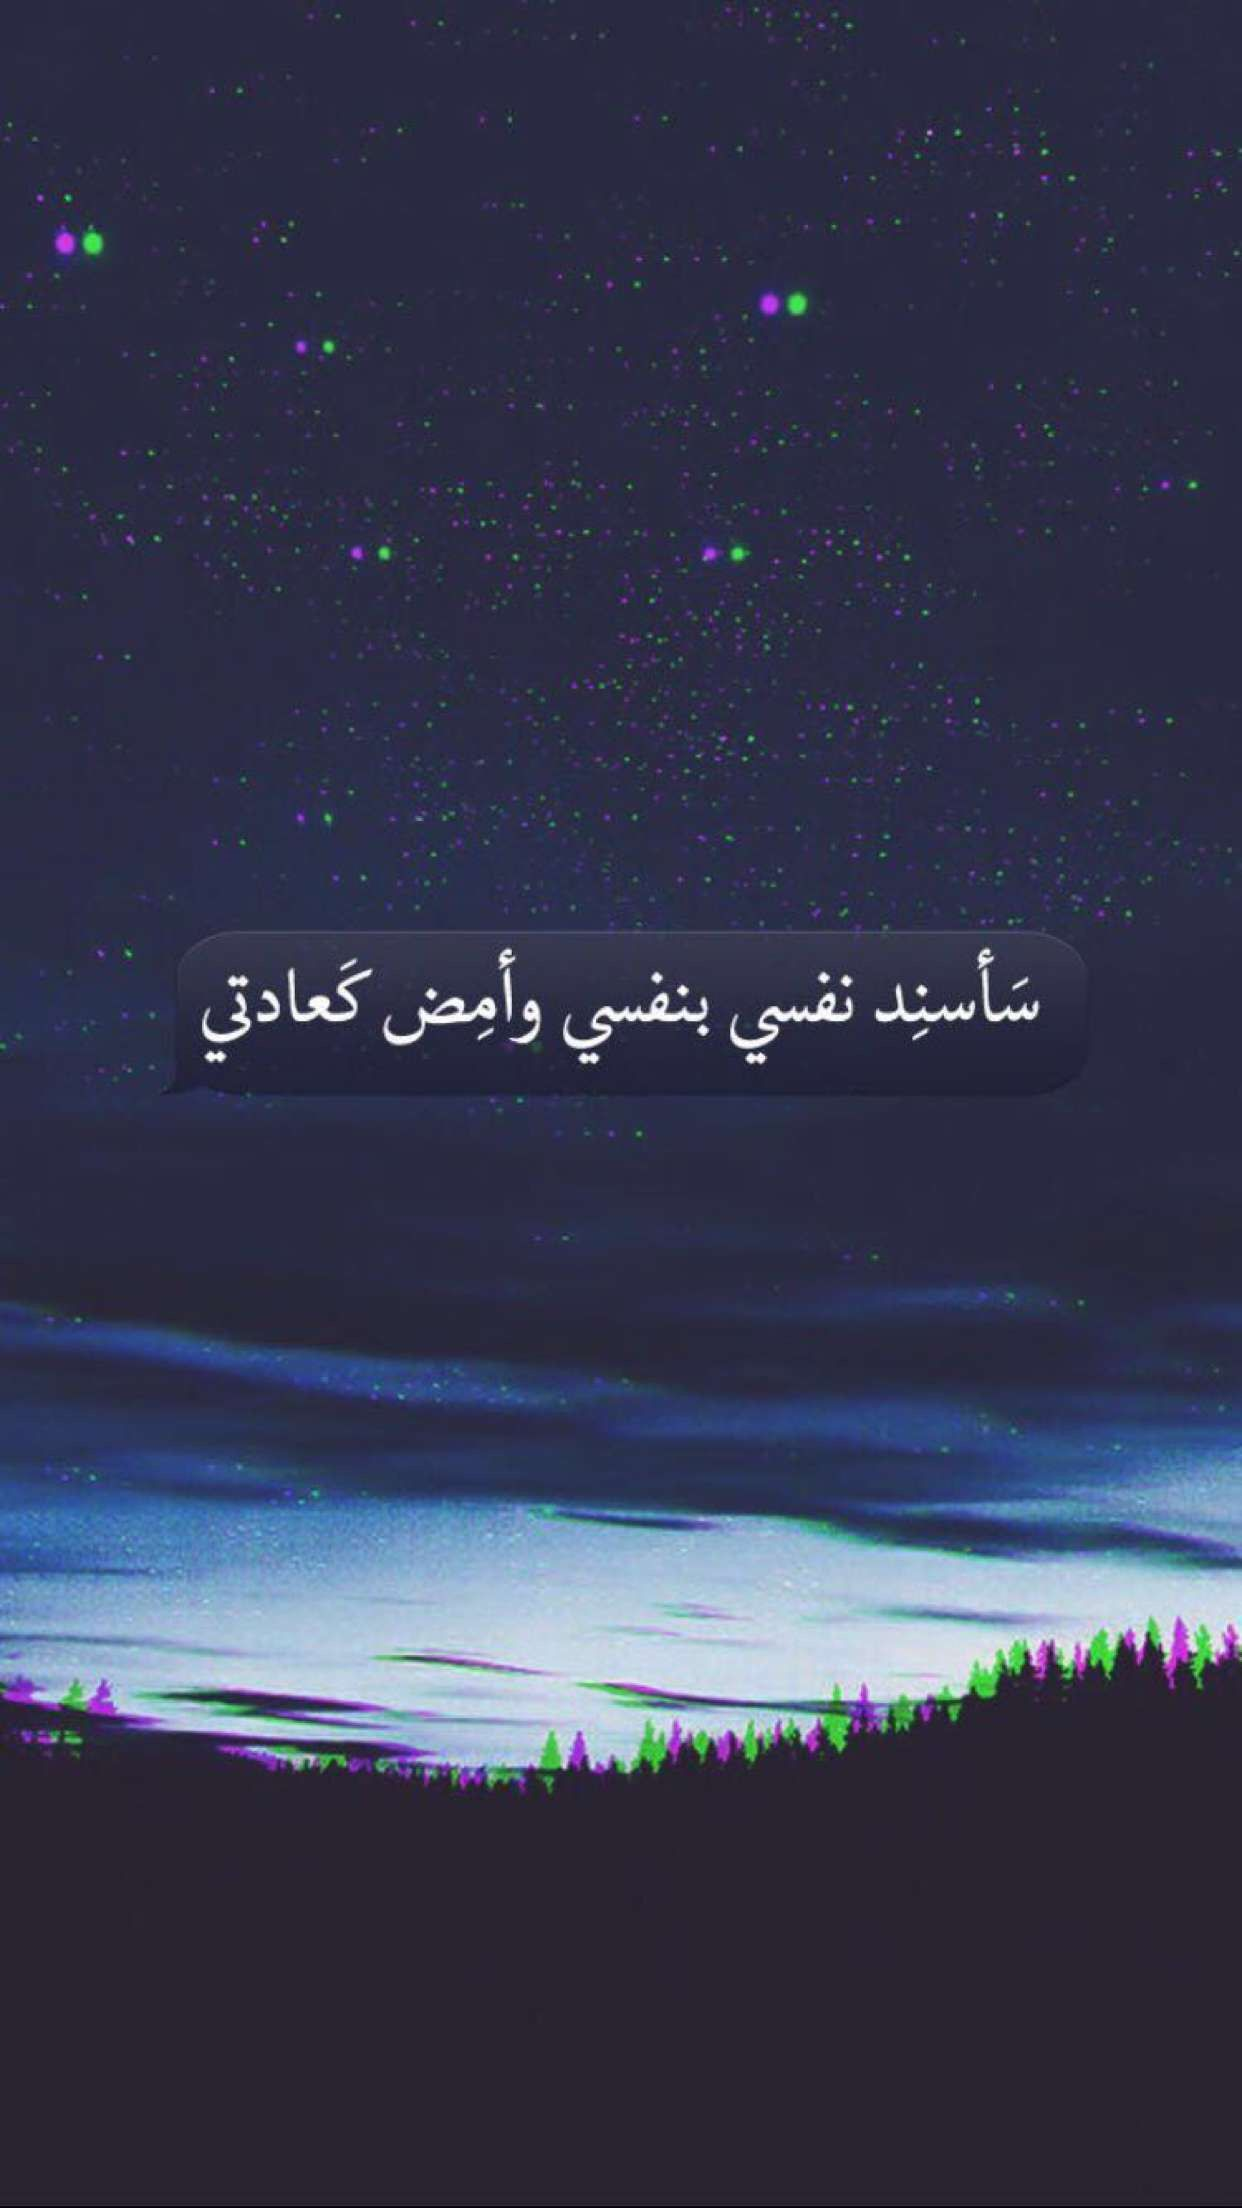 Pin By Neno Hoshemoto On Arabic Quotes Nice Inspirational Quotes Cool Words Sweet Words